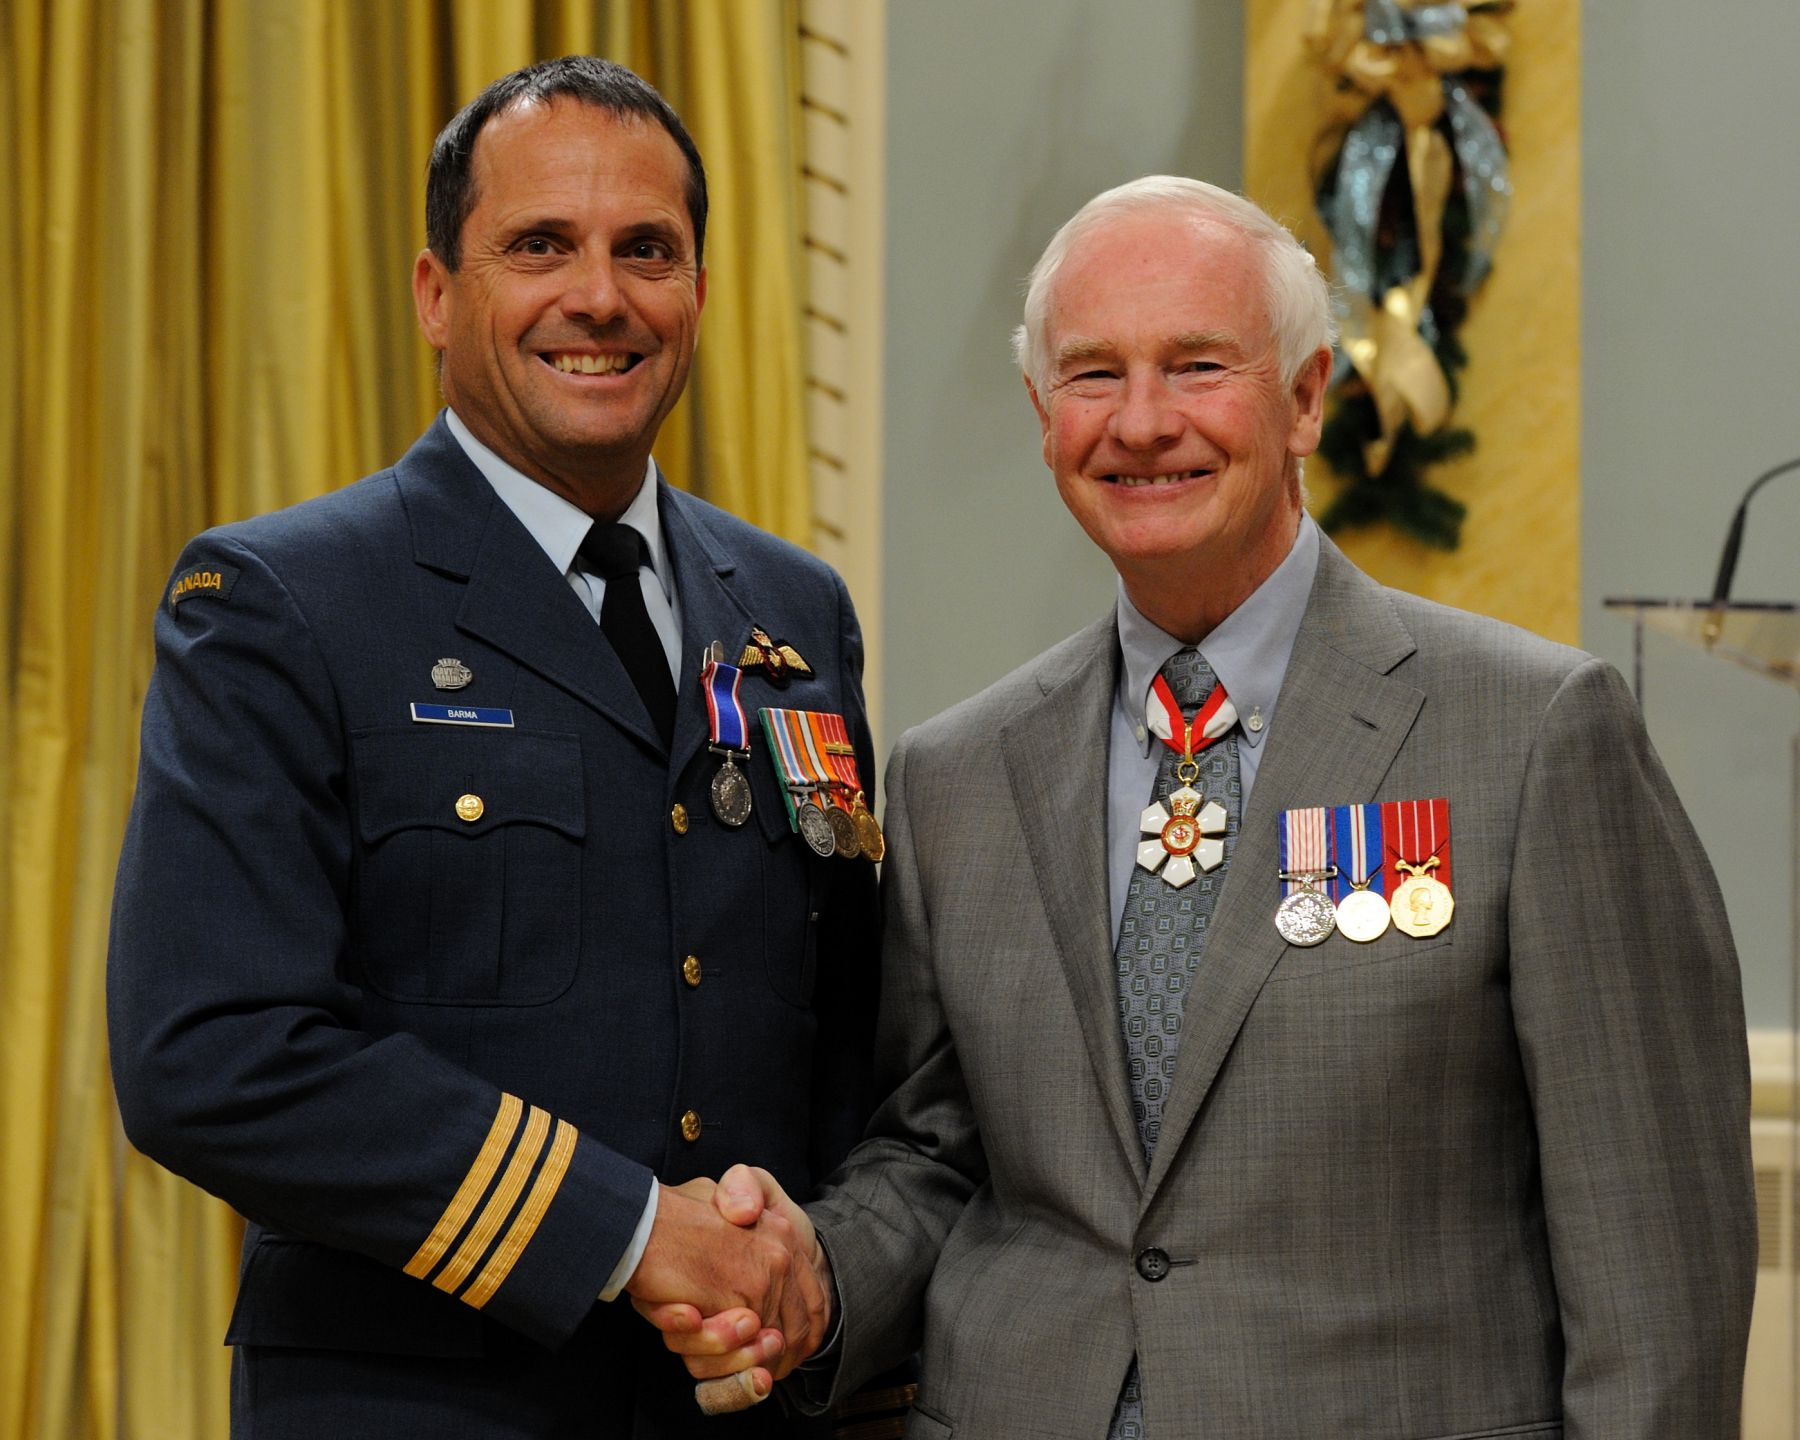 Major Joseph Siméon Raymond Pierre Barma, C.D., received the Operational Service Medal for his work in Haiti.